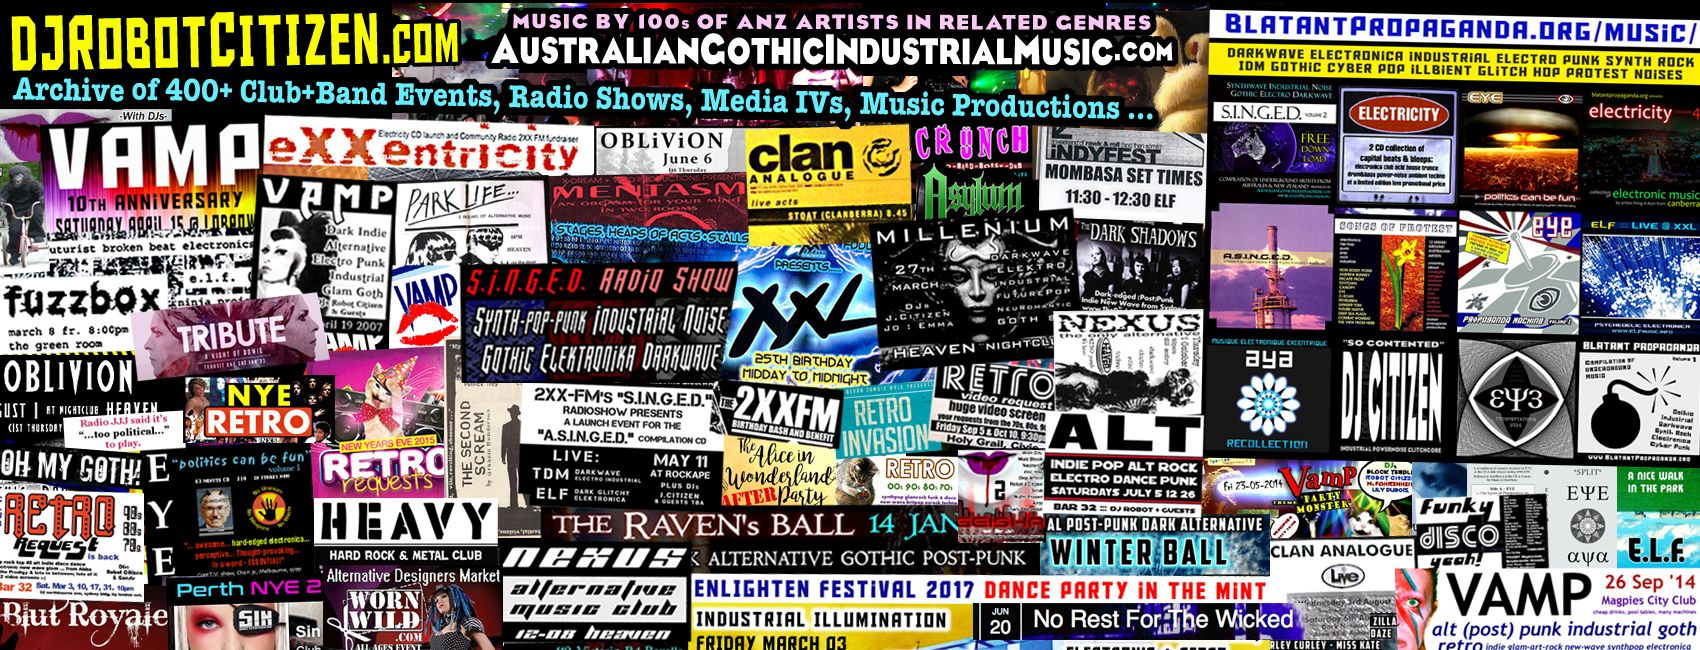 Australian Gothic Goths Industrial Dark Alternative Music Goth Night Clubs Scene Australia Club Nights Parties DJs DJ Robot Citizen 80's 90's 00's 10's Scenes People History Sydney Melbourne Perth Brisbane Adelaide Canberra Musicians Musical Record Labels Bands Groups Artists